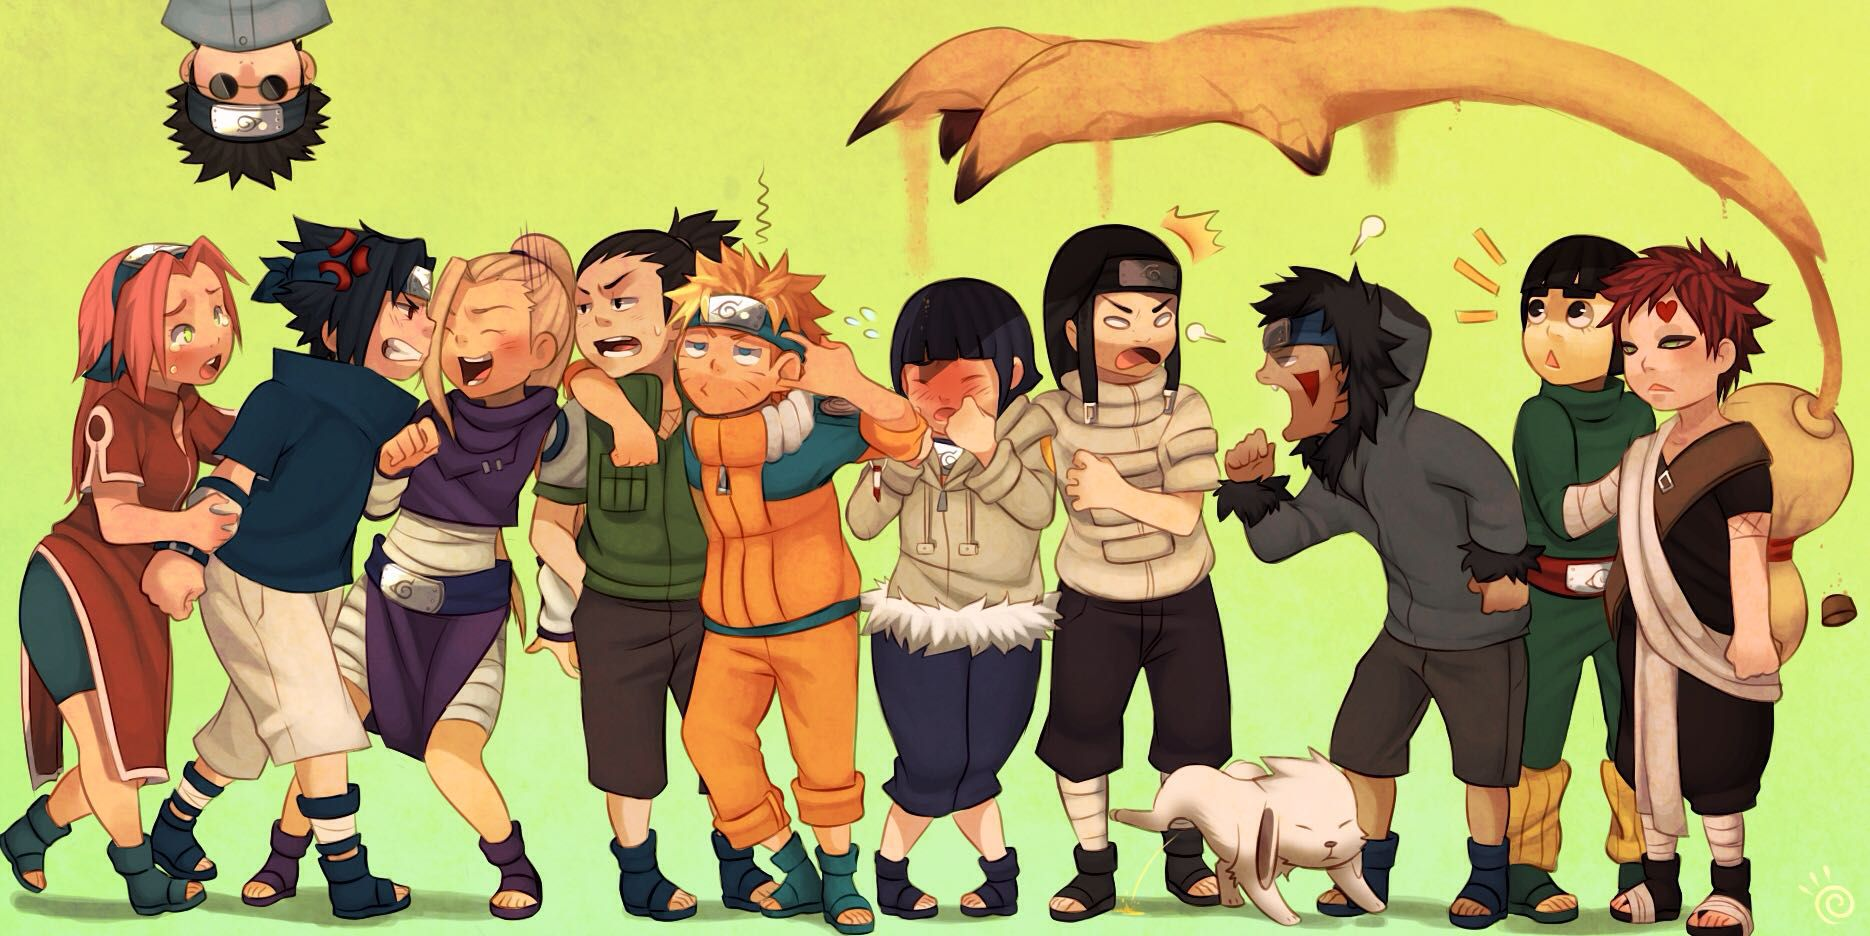 Lost - Naruto FanFic - The Chunin Exams - Wattpad